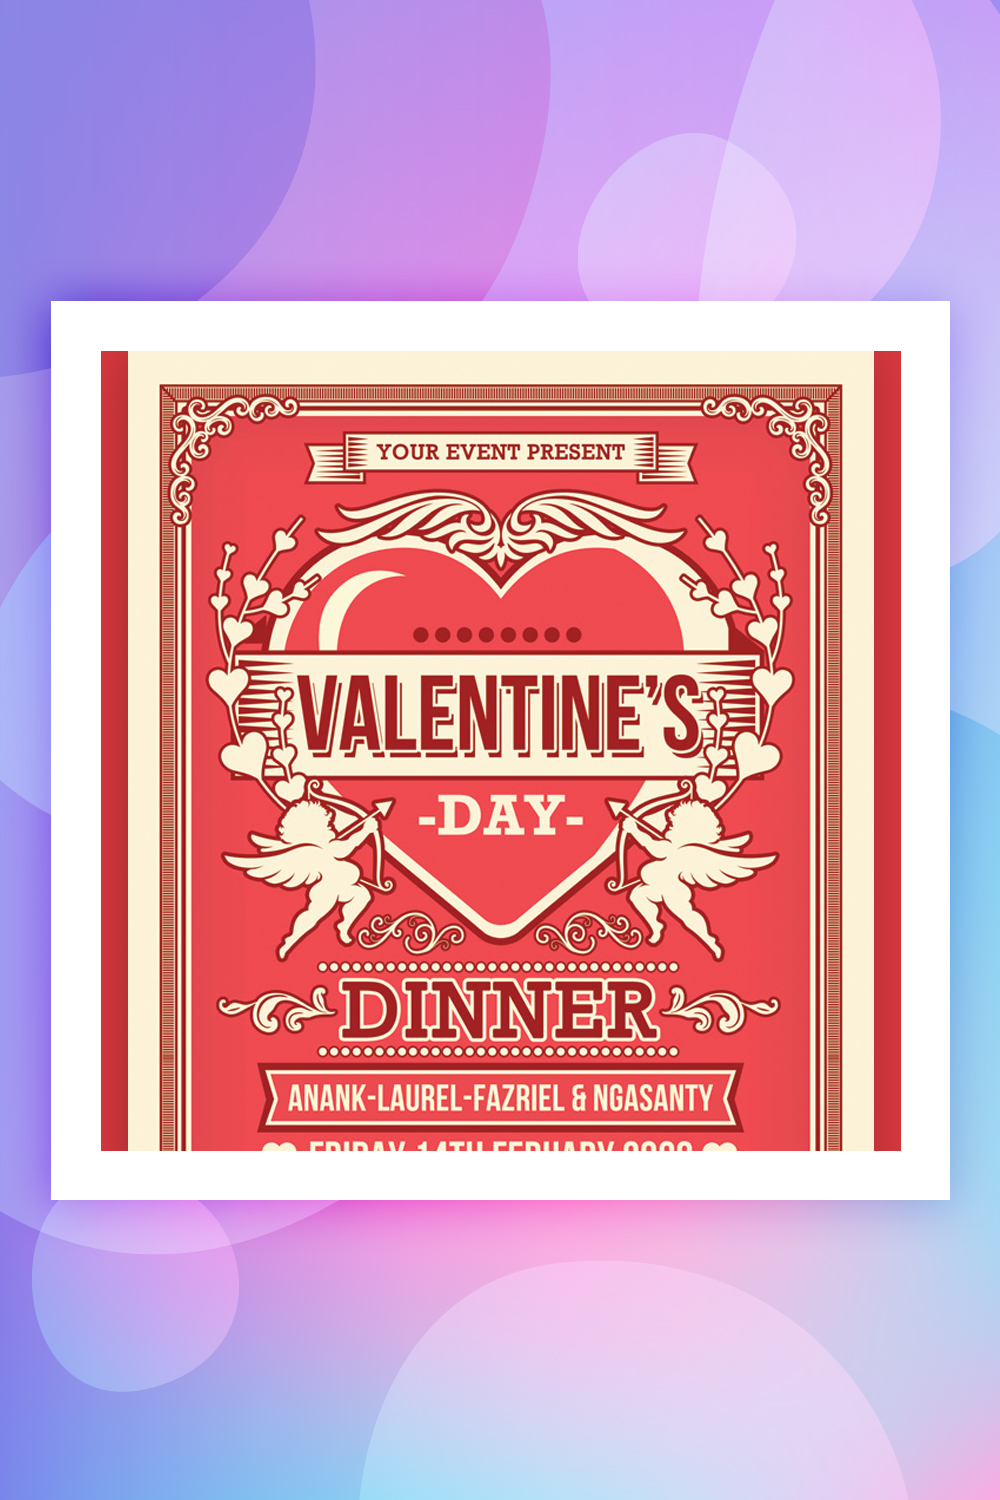 Valentine's Day Dinner Flyer Corporate Identity Template